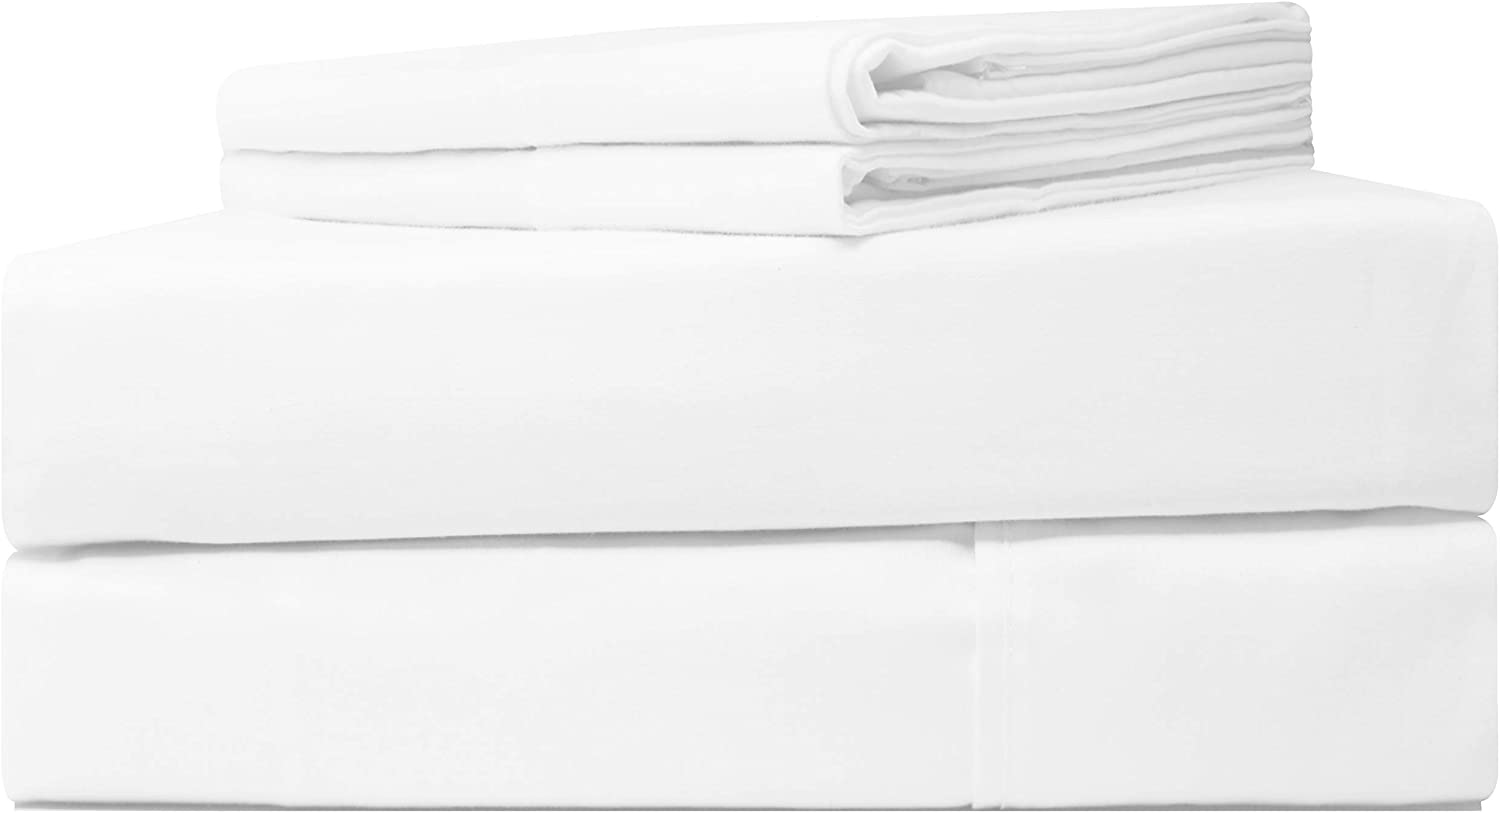 Five Elements 500-Thread-Count 100% Egyptian Pure Cotton Sheets Set Pure White Queen Size, 4-Pc Extra Long-Staple Luxury Hotel Bedding Bed Sheets, Soft Sateen Weave, Fit Mattress Upto 18'' Deep Pocket